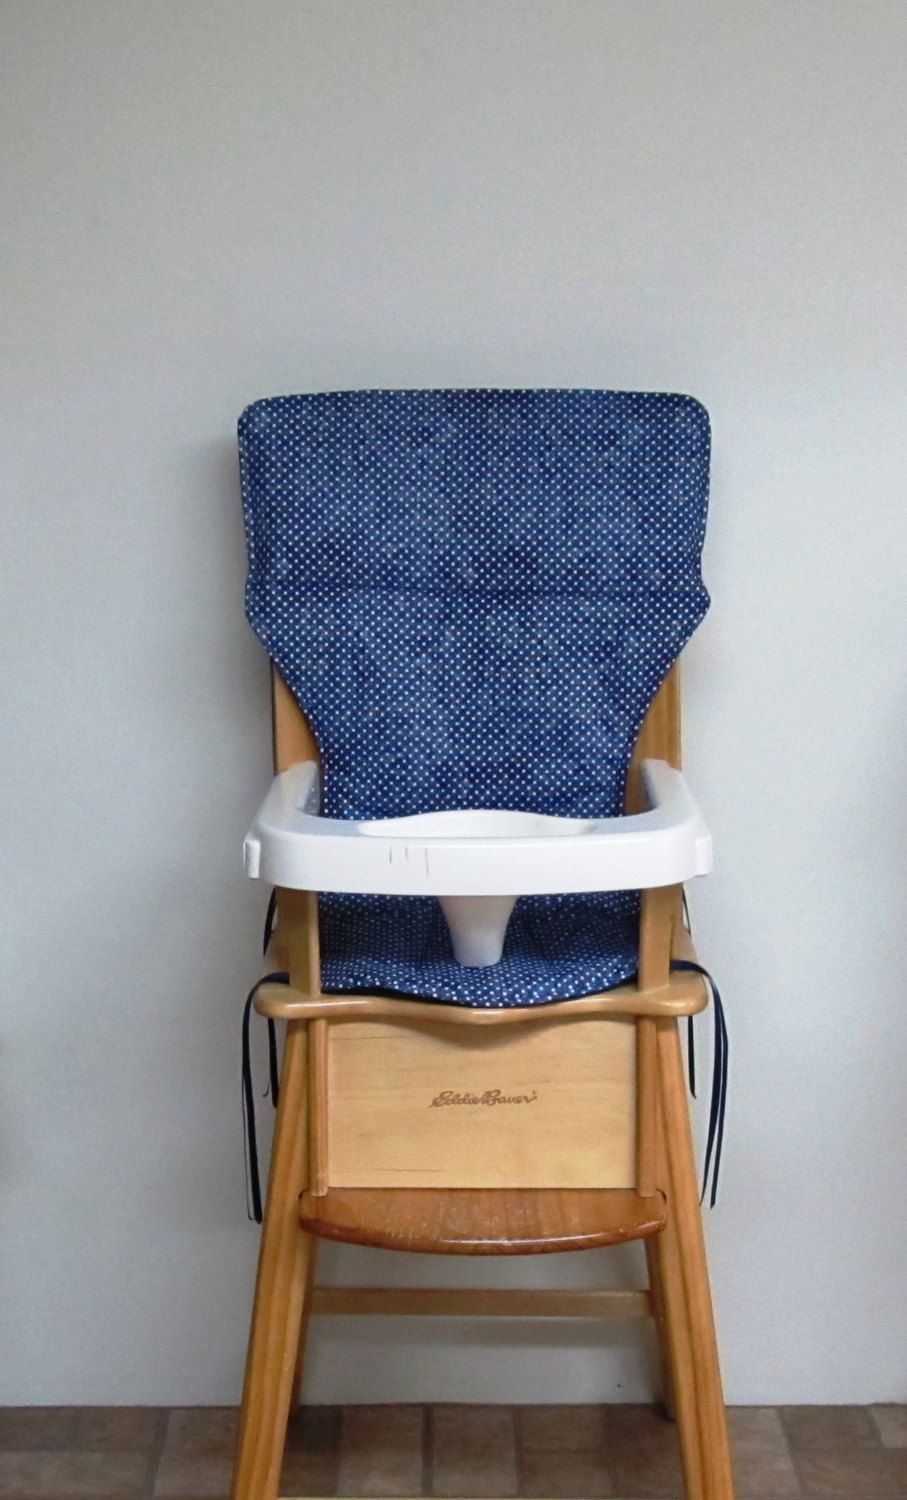 eddie bauer high chair cover, jenny lind chair pad